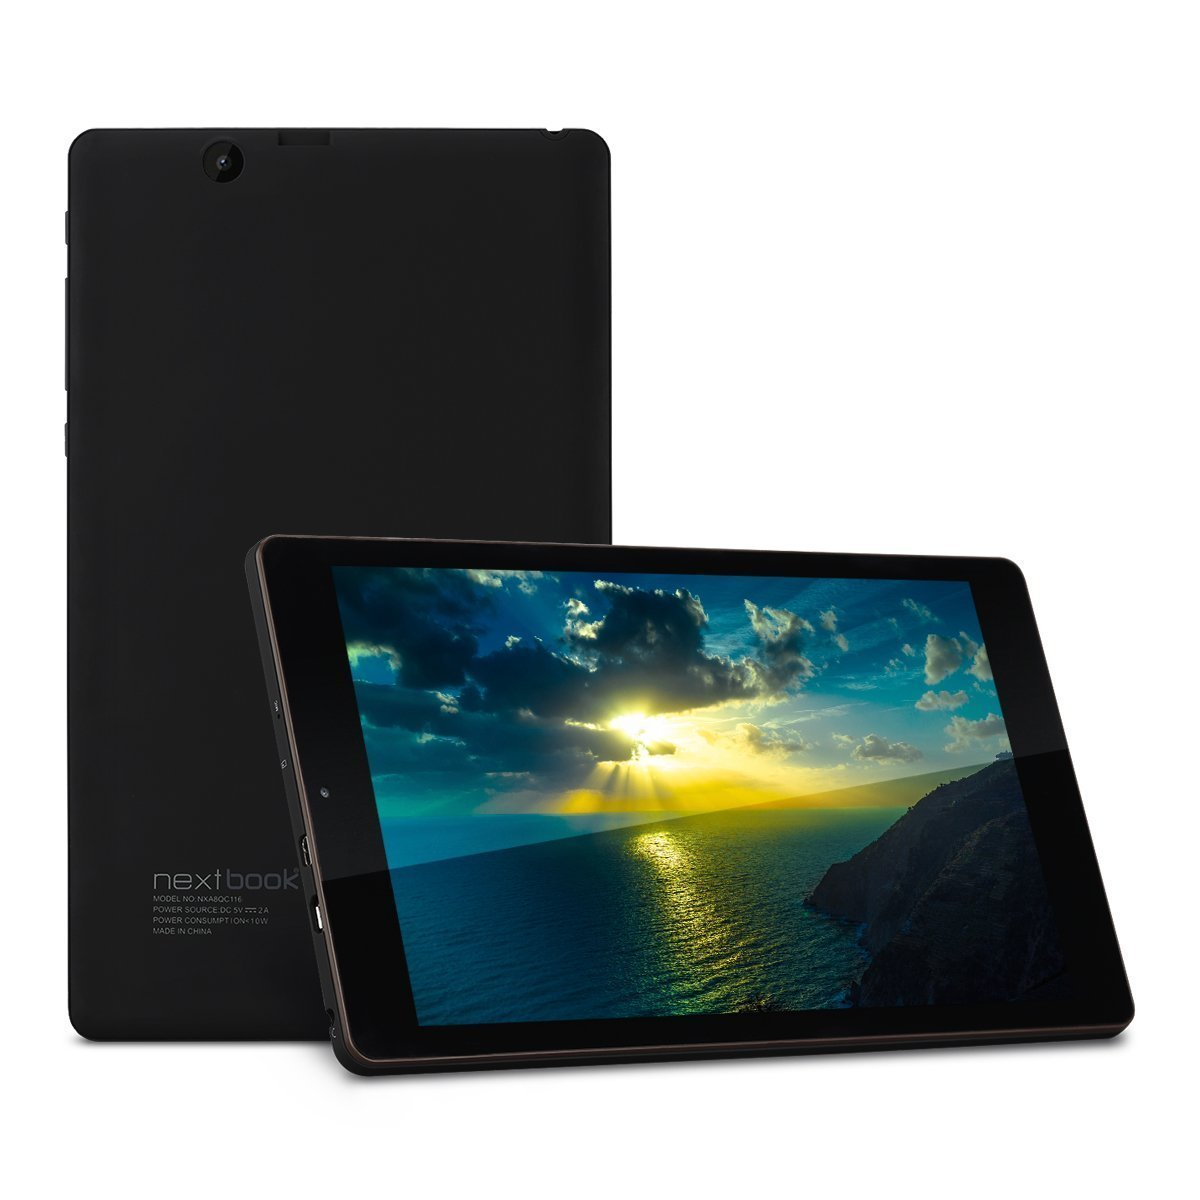 Lightstory Tablet PC